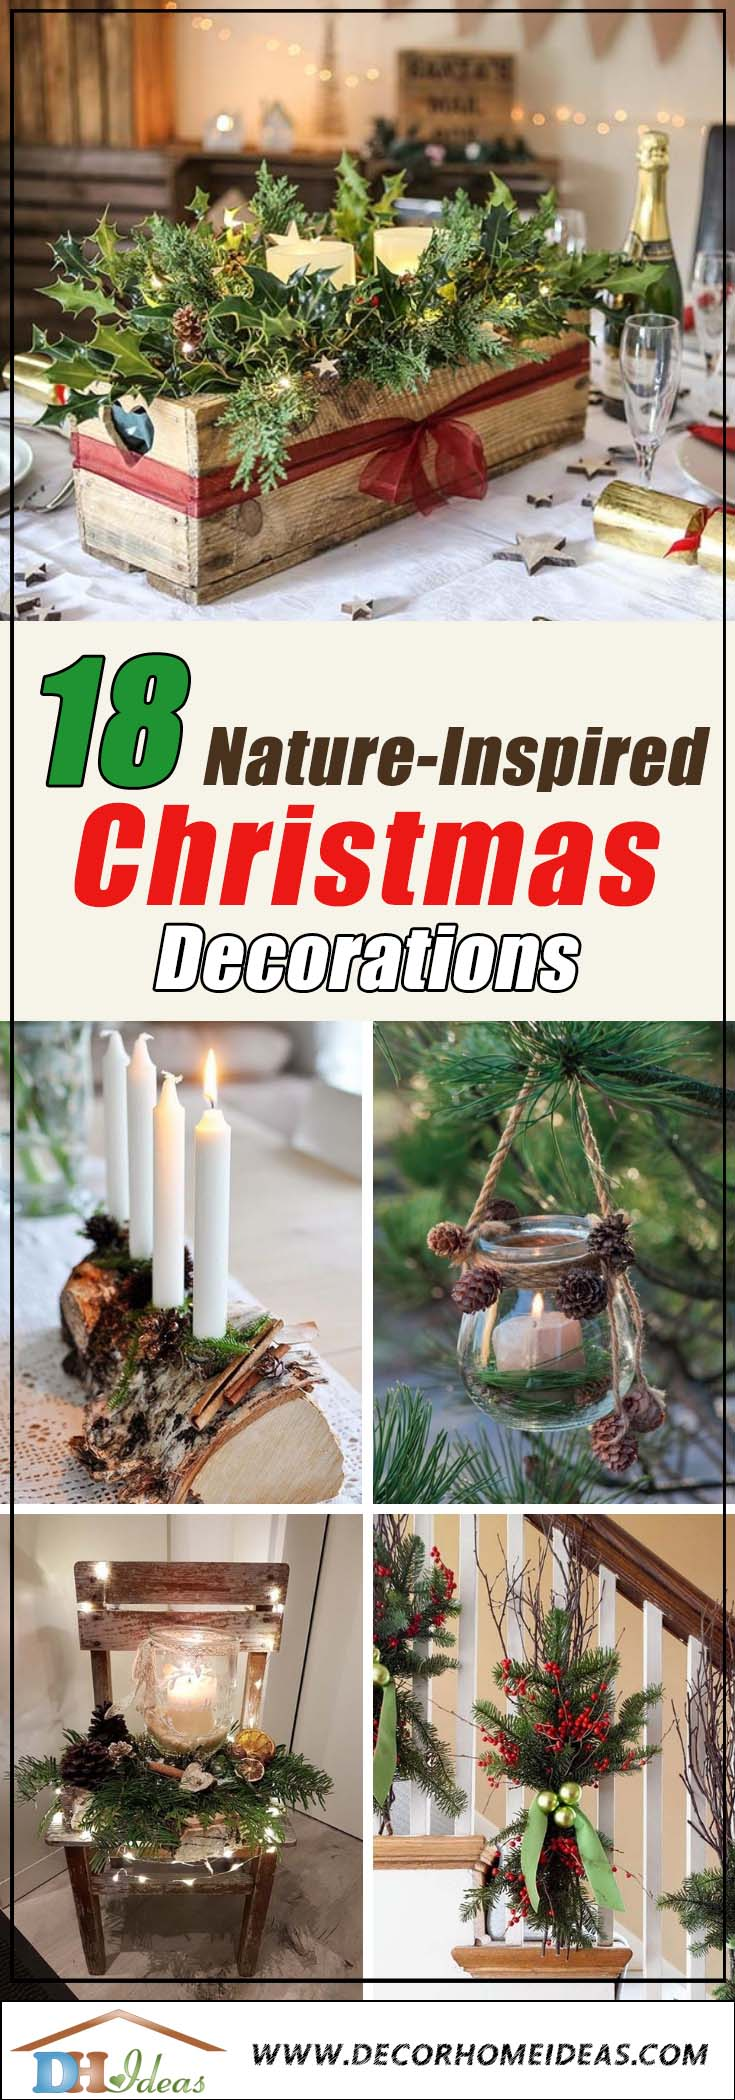 Best Natural Christmas Decorations #Christmas #Christmasdecor #nature #natural #natureinspired #decorhomeideas